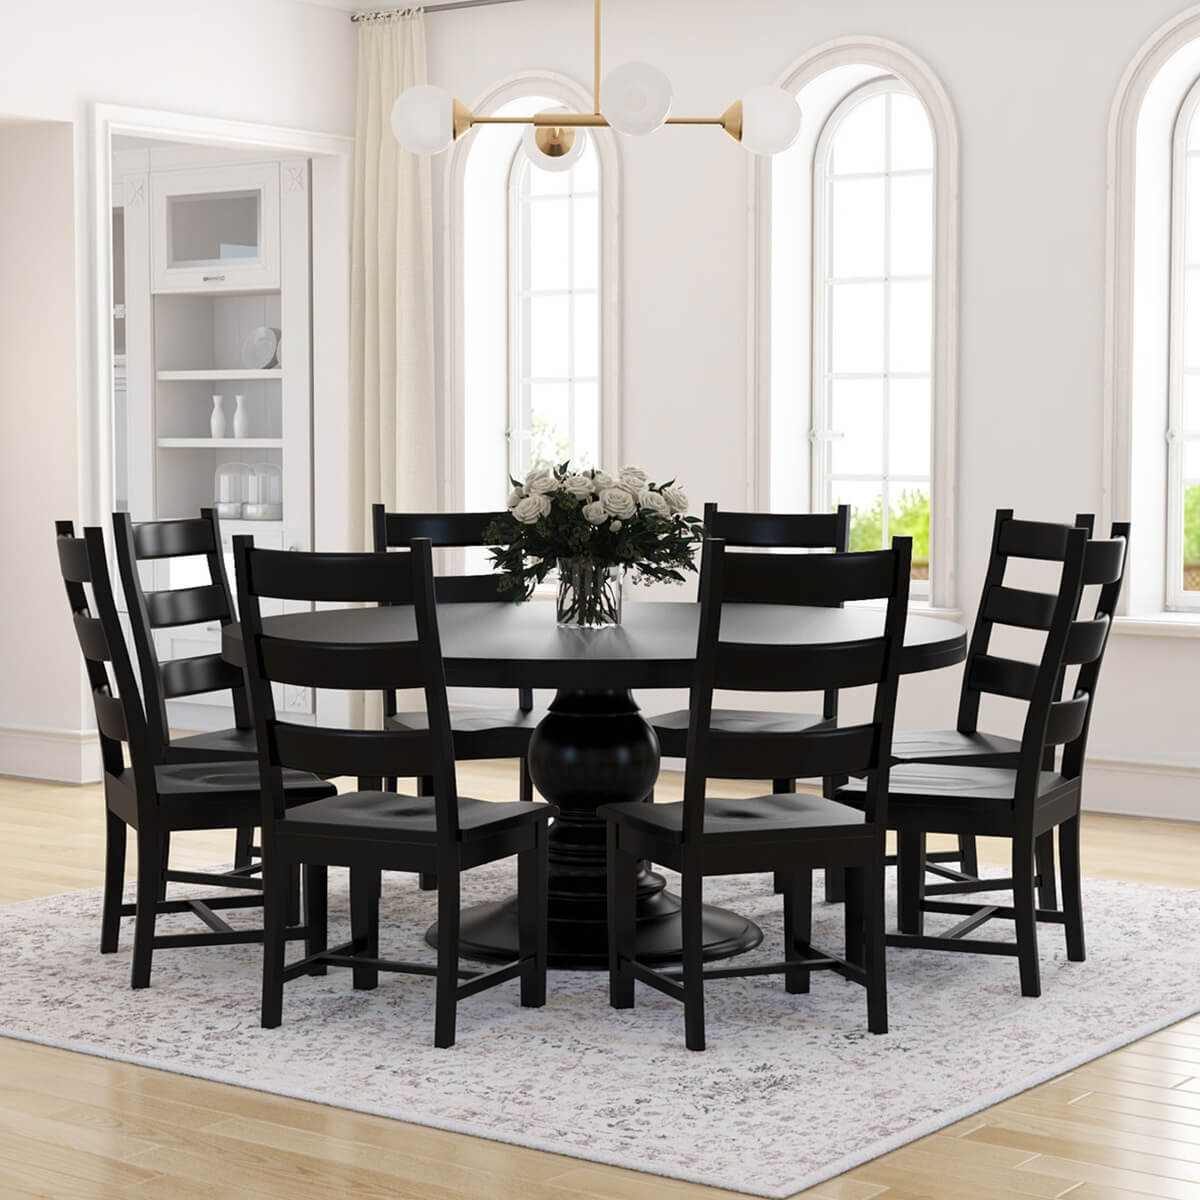 Nottingham rustic solid wood black round dining room table set for Dining room sets with round tables